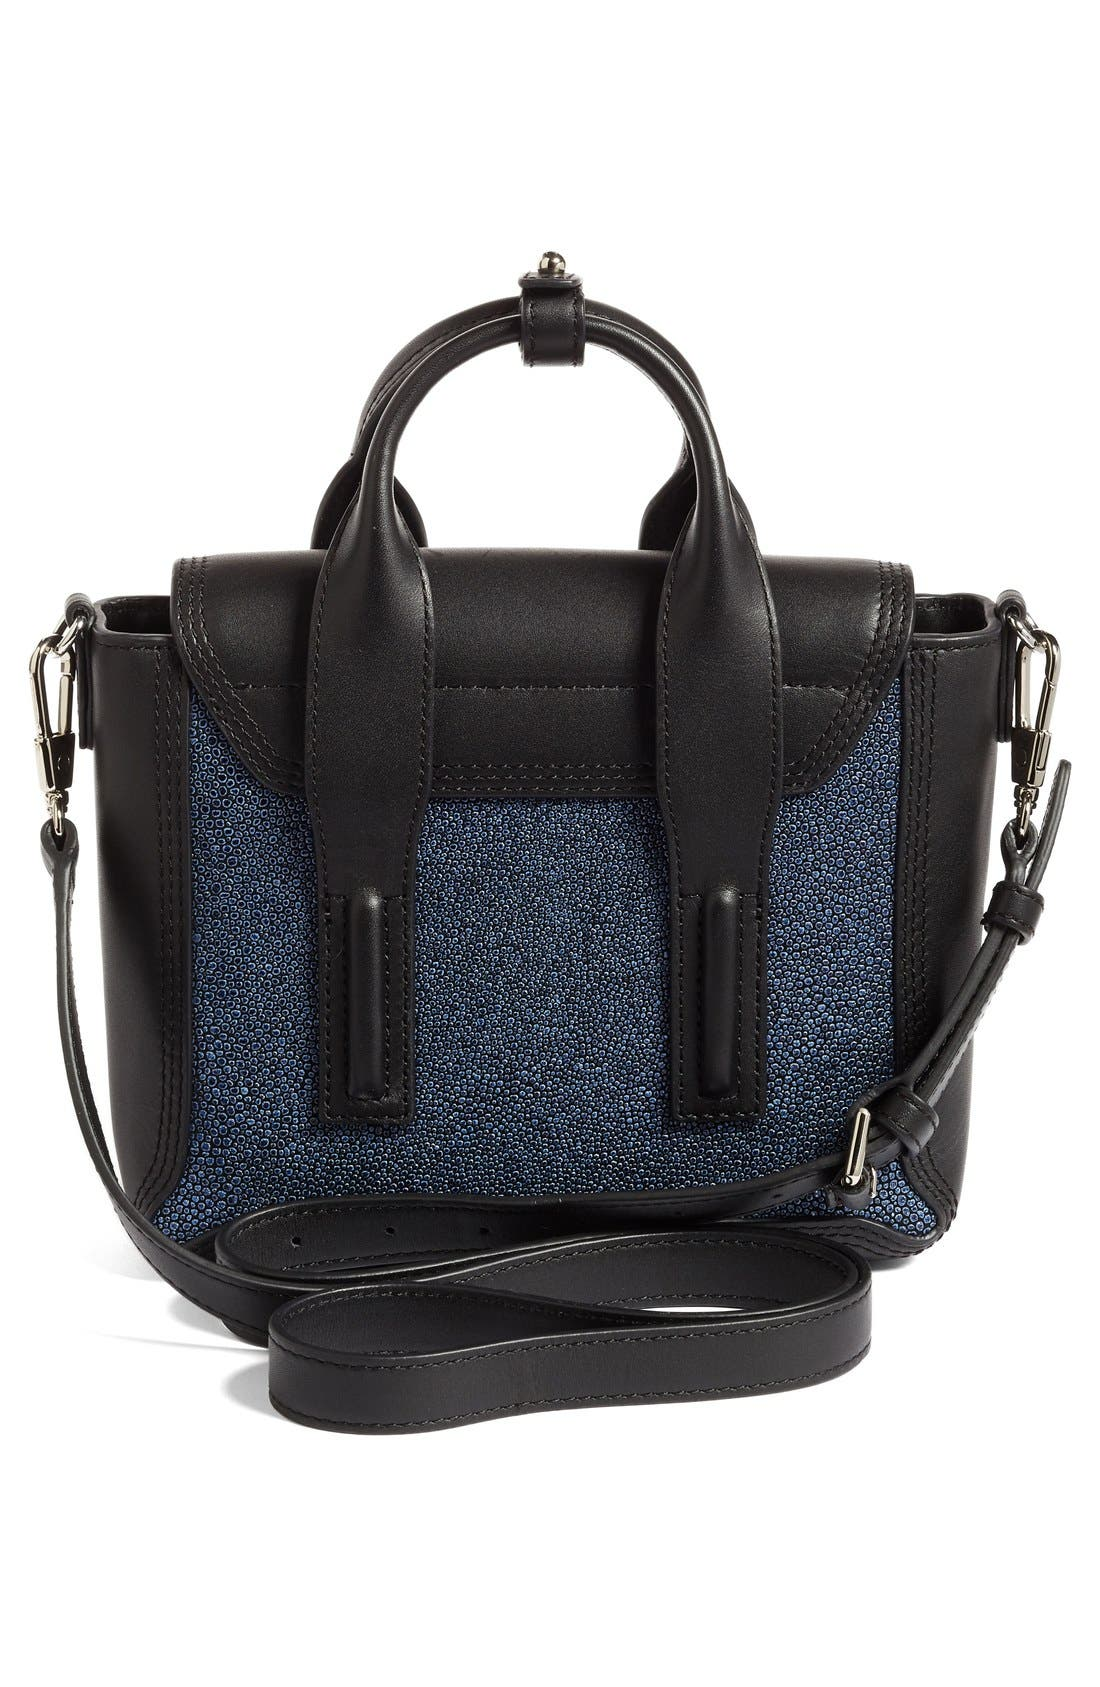 Alternate Image 3  - 3.1 Phillip Lim Mini Pashli Leather Satchel